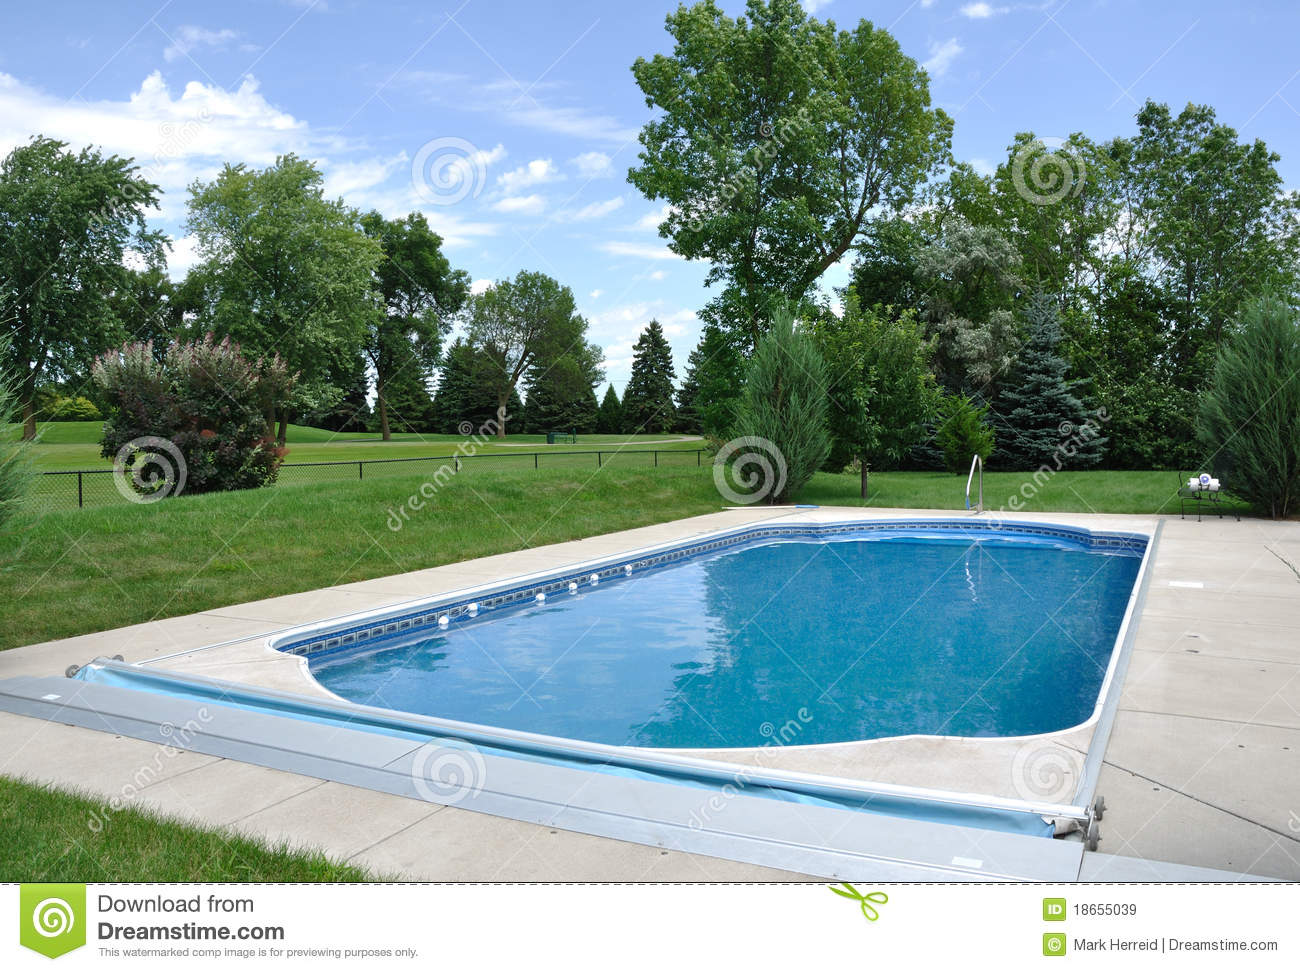 Hinterhof in boden swimmingpool stockbild bild von for Pool im boden